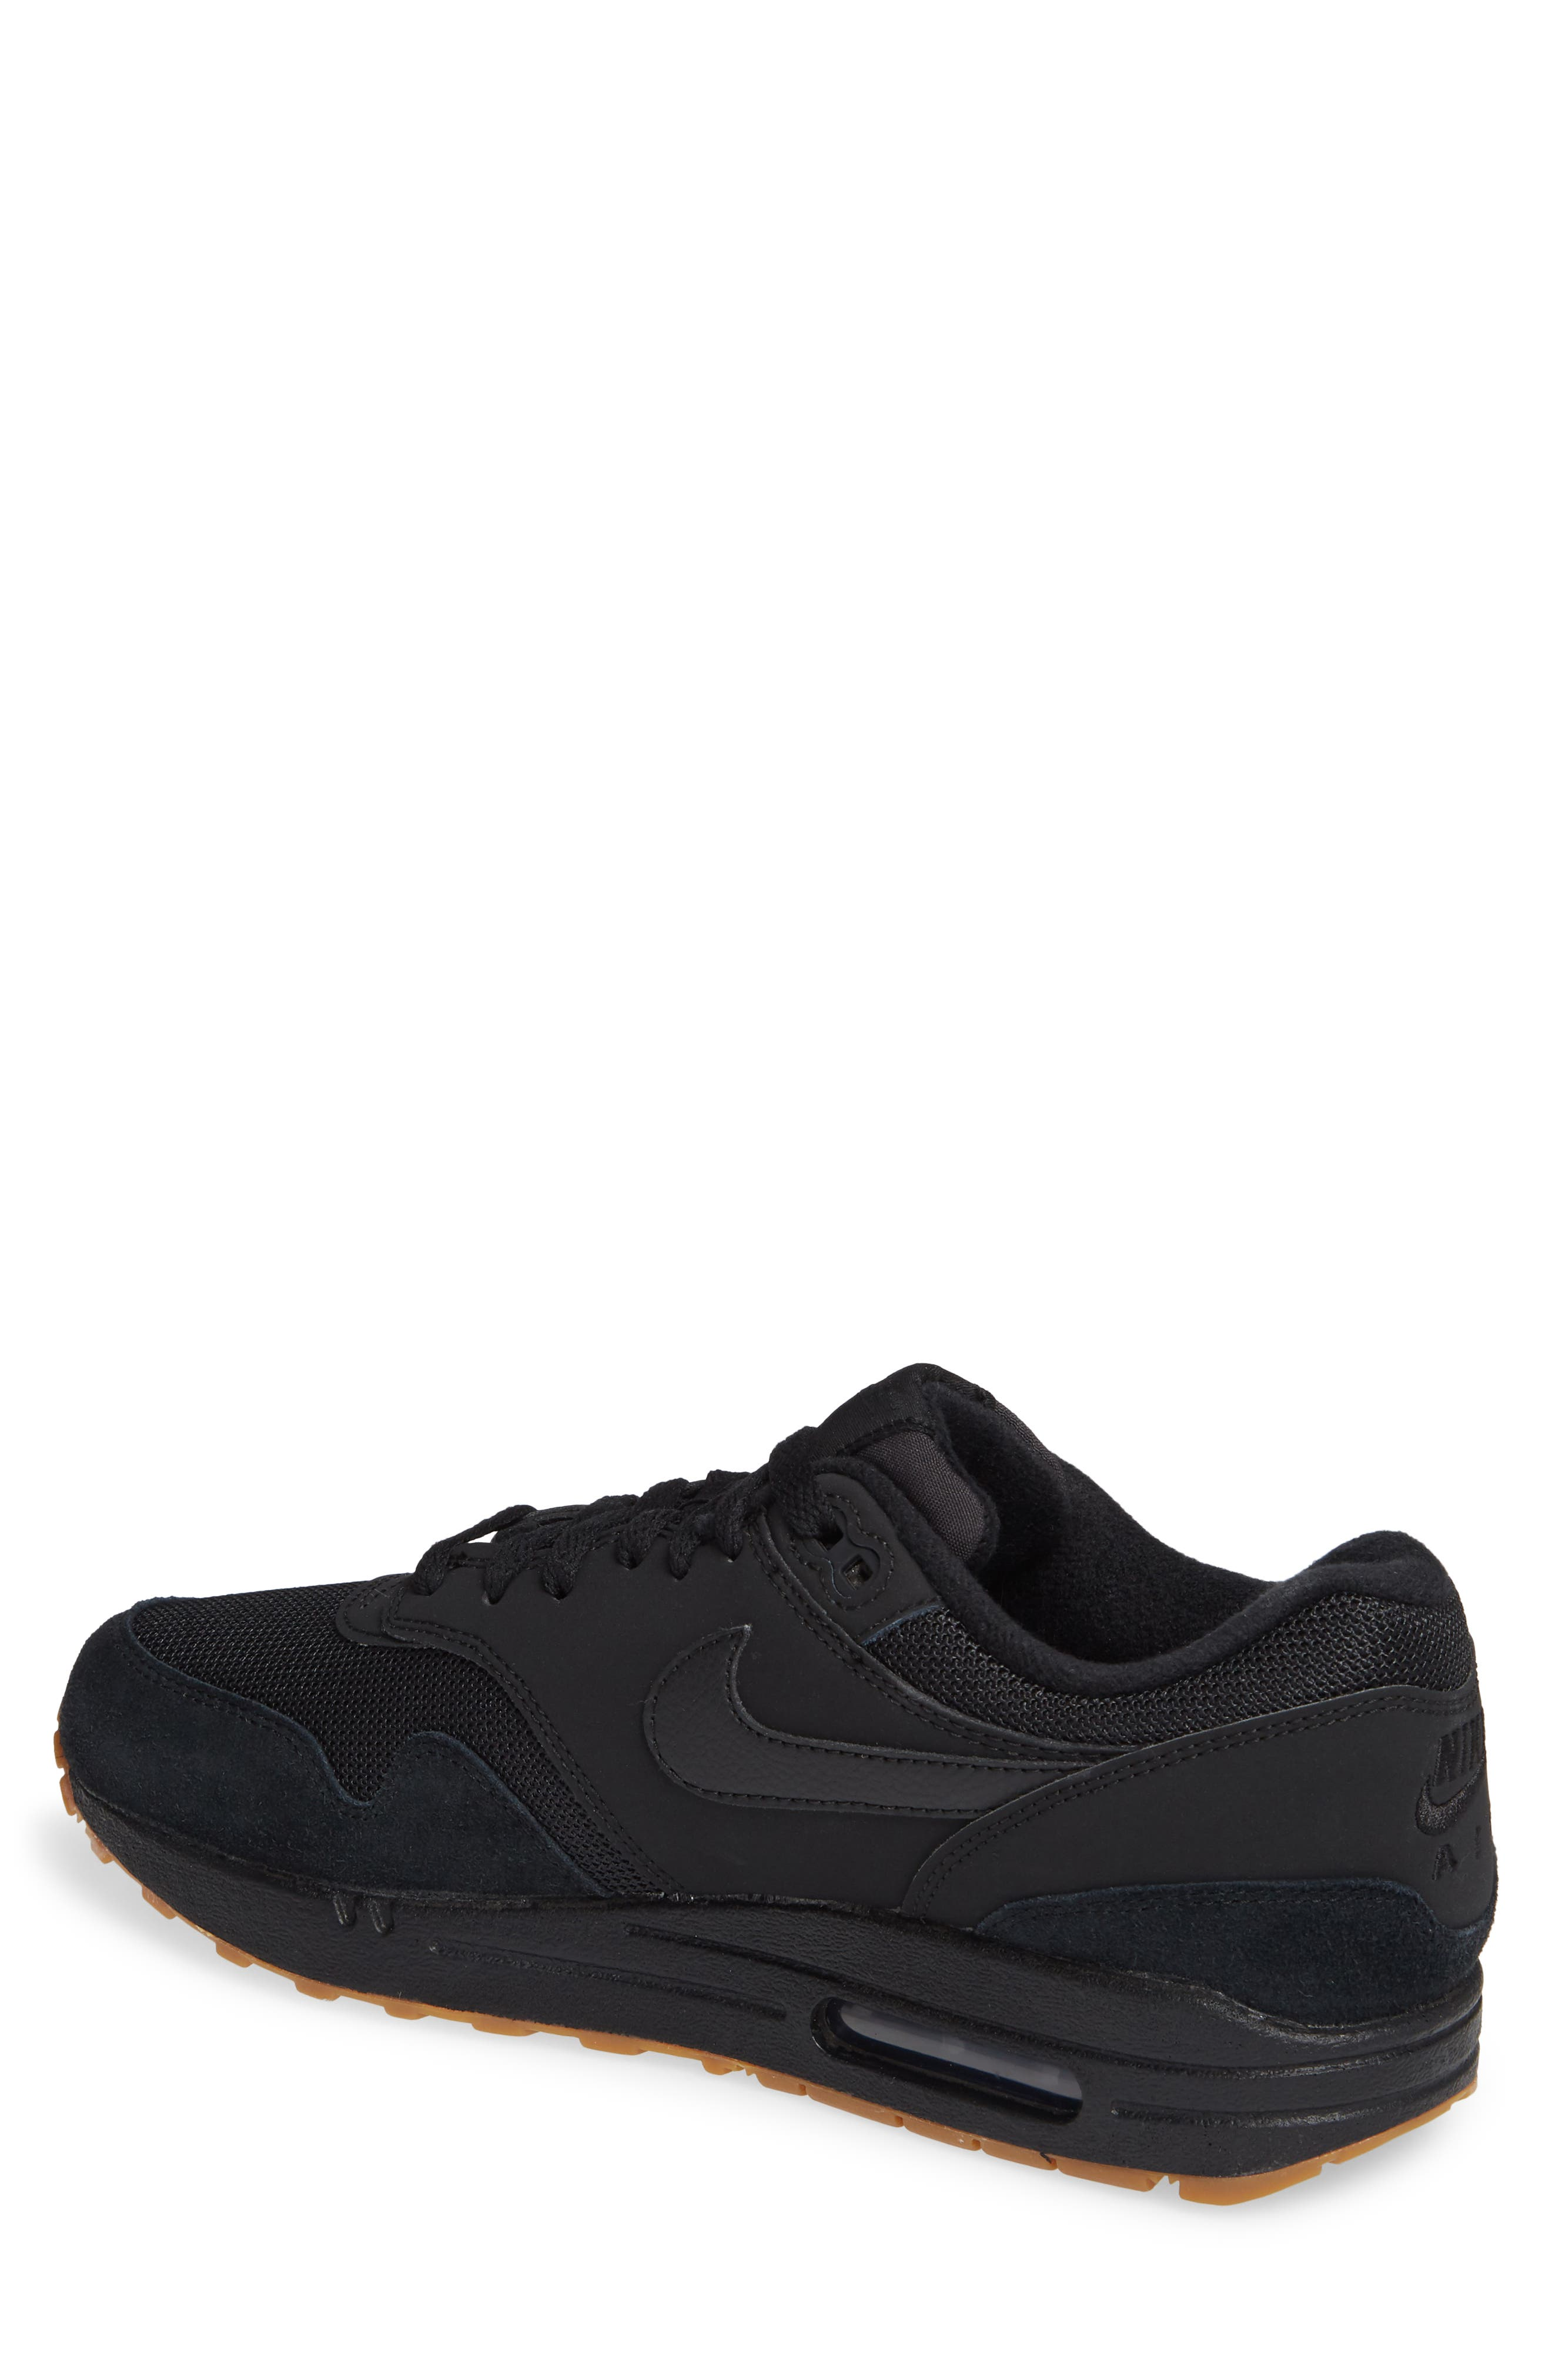 Air Max 1 Sneaker,                             Alternate thumbnail 2, color,                             BLACK/ BLACK/ GUM MEDIUM BROWN